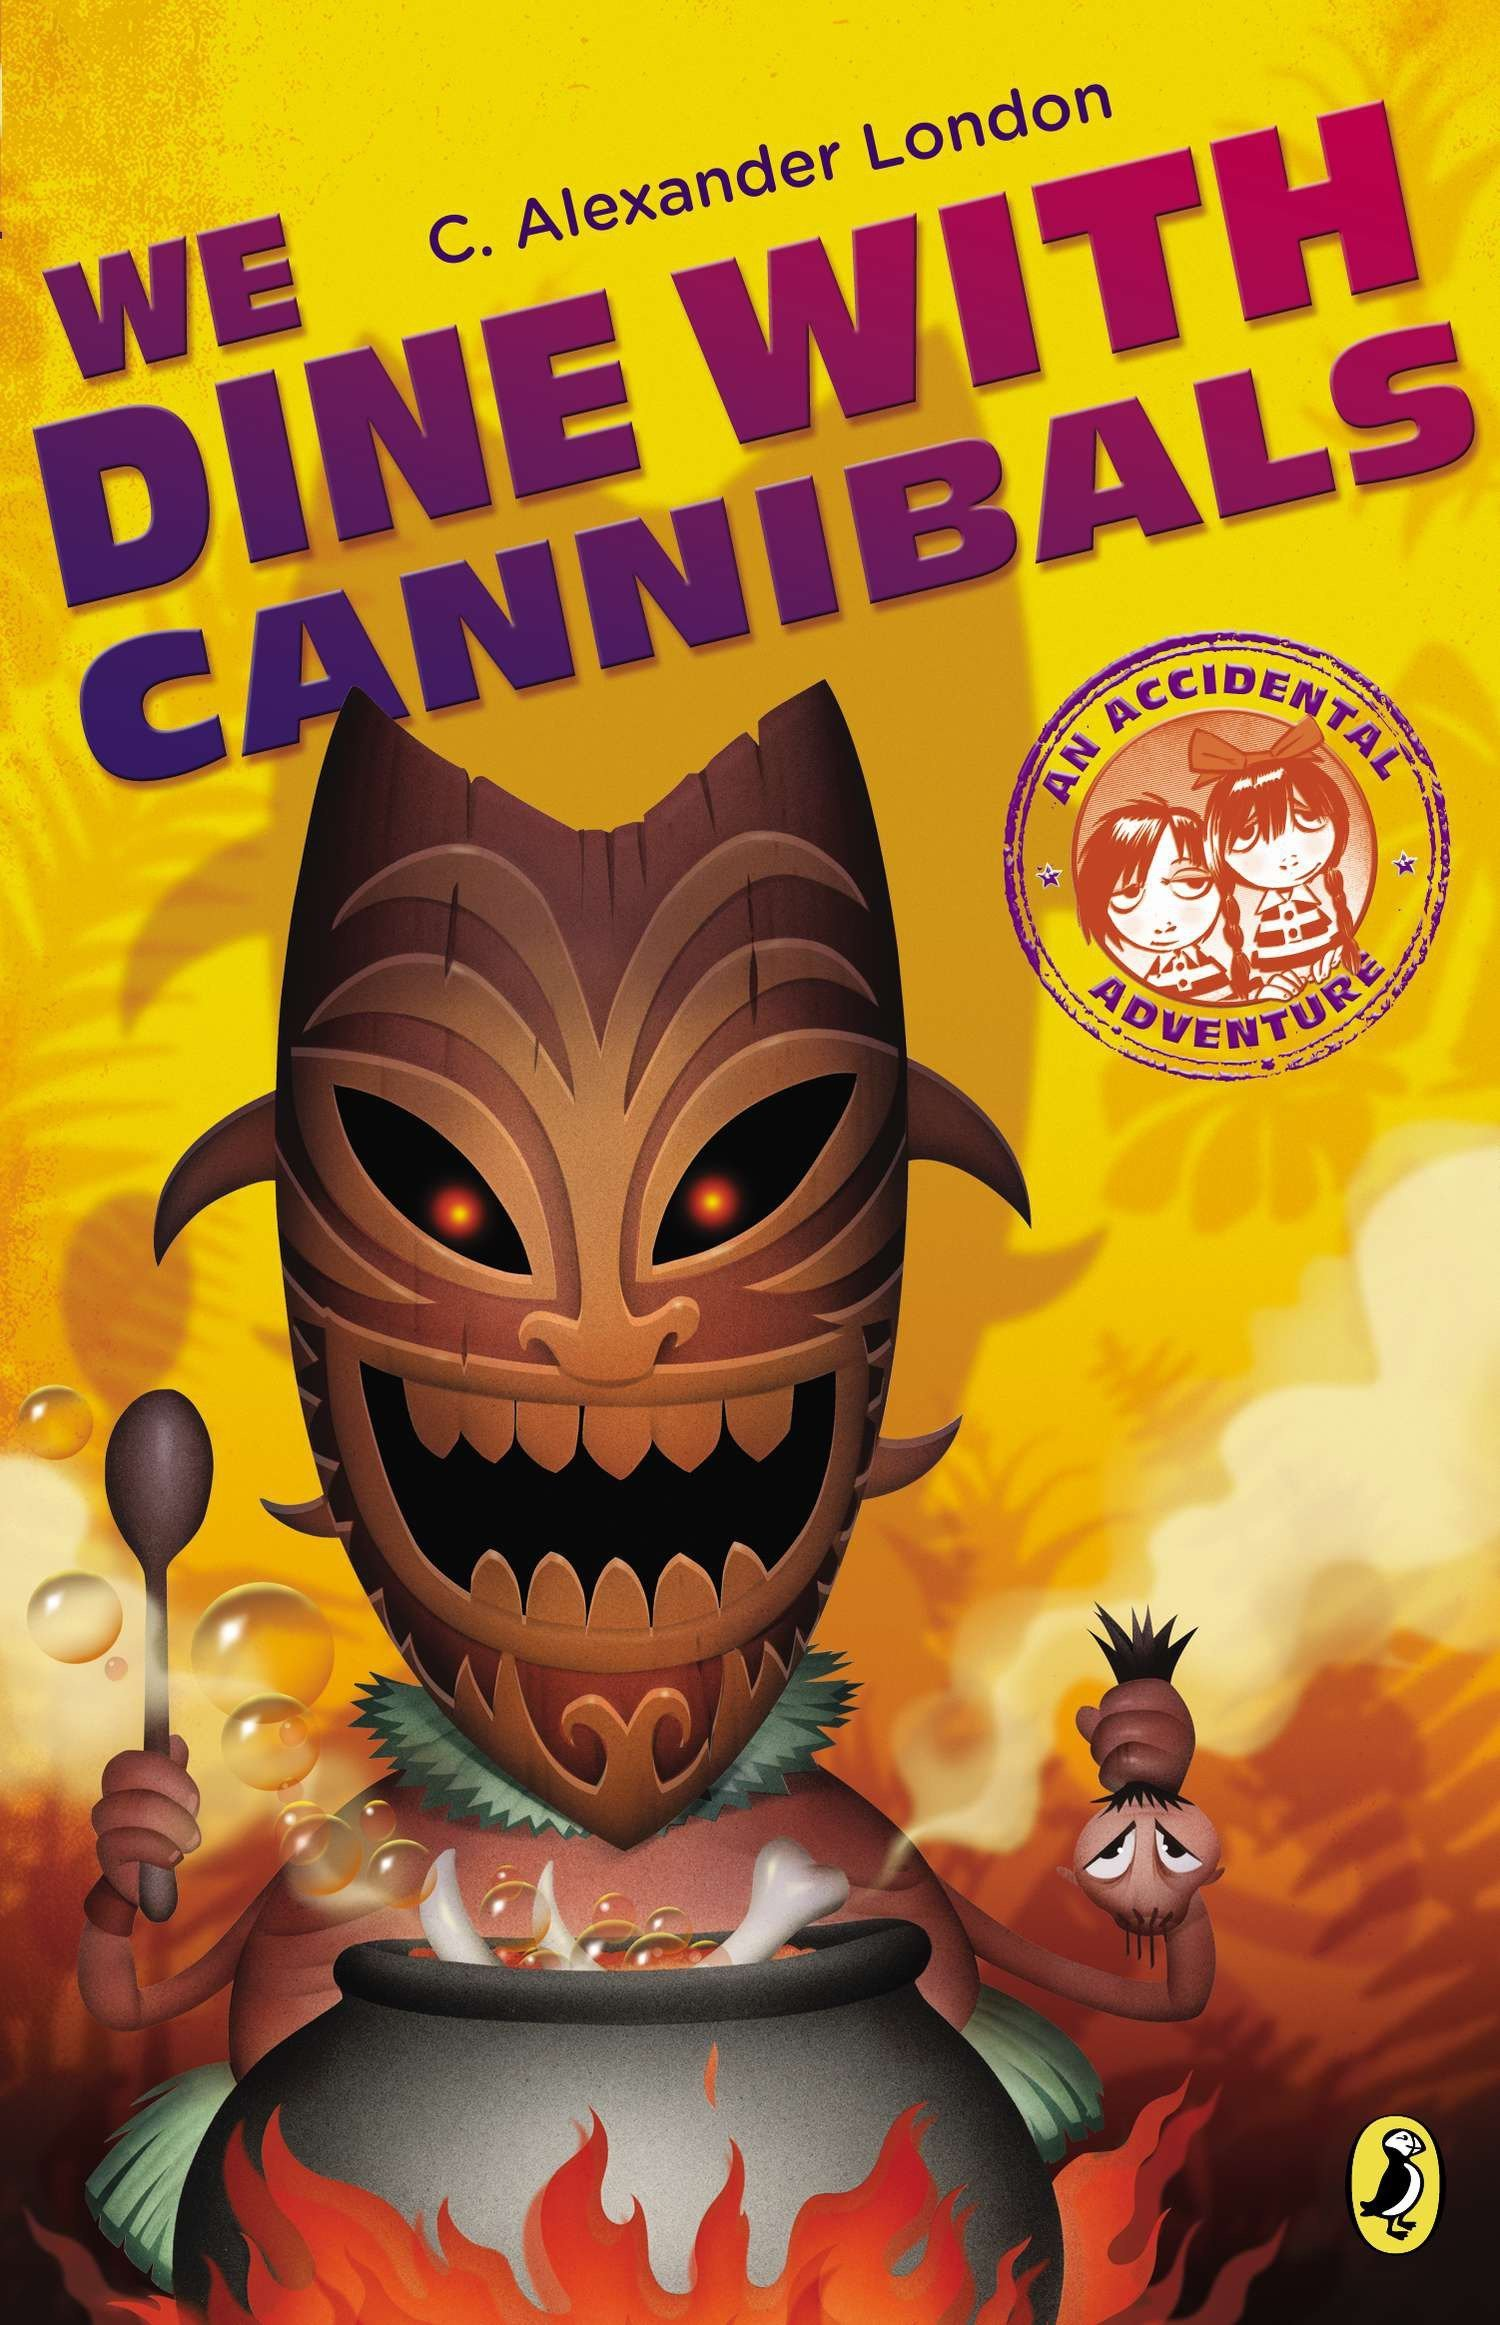 Read Online We Dine with Cannibals (An Accidental Adventure) ebook